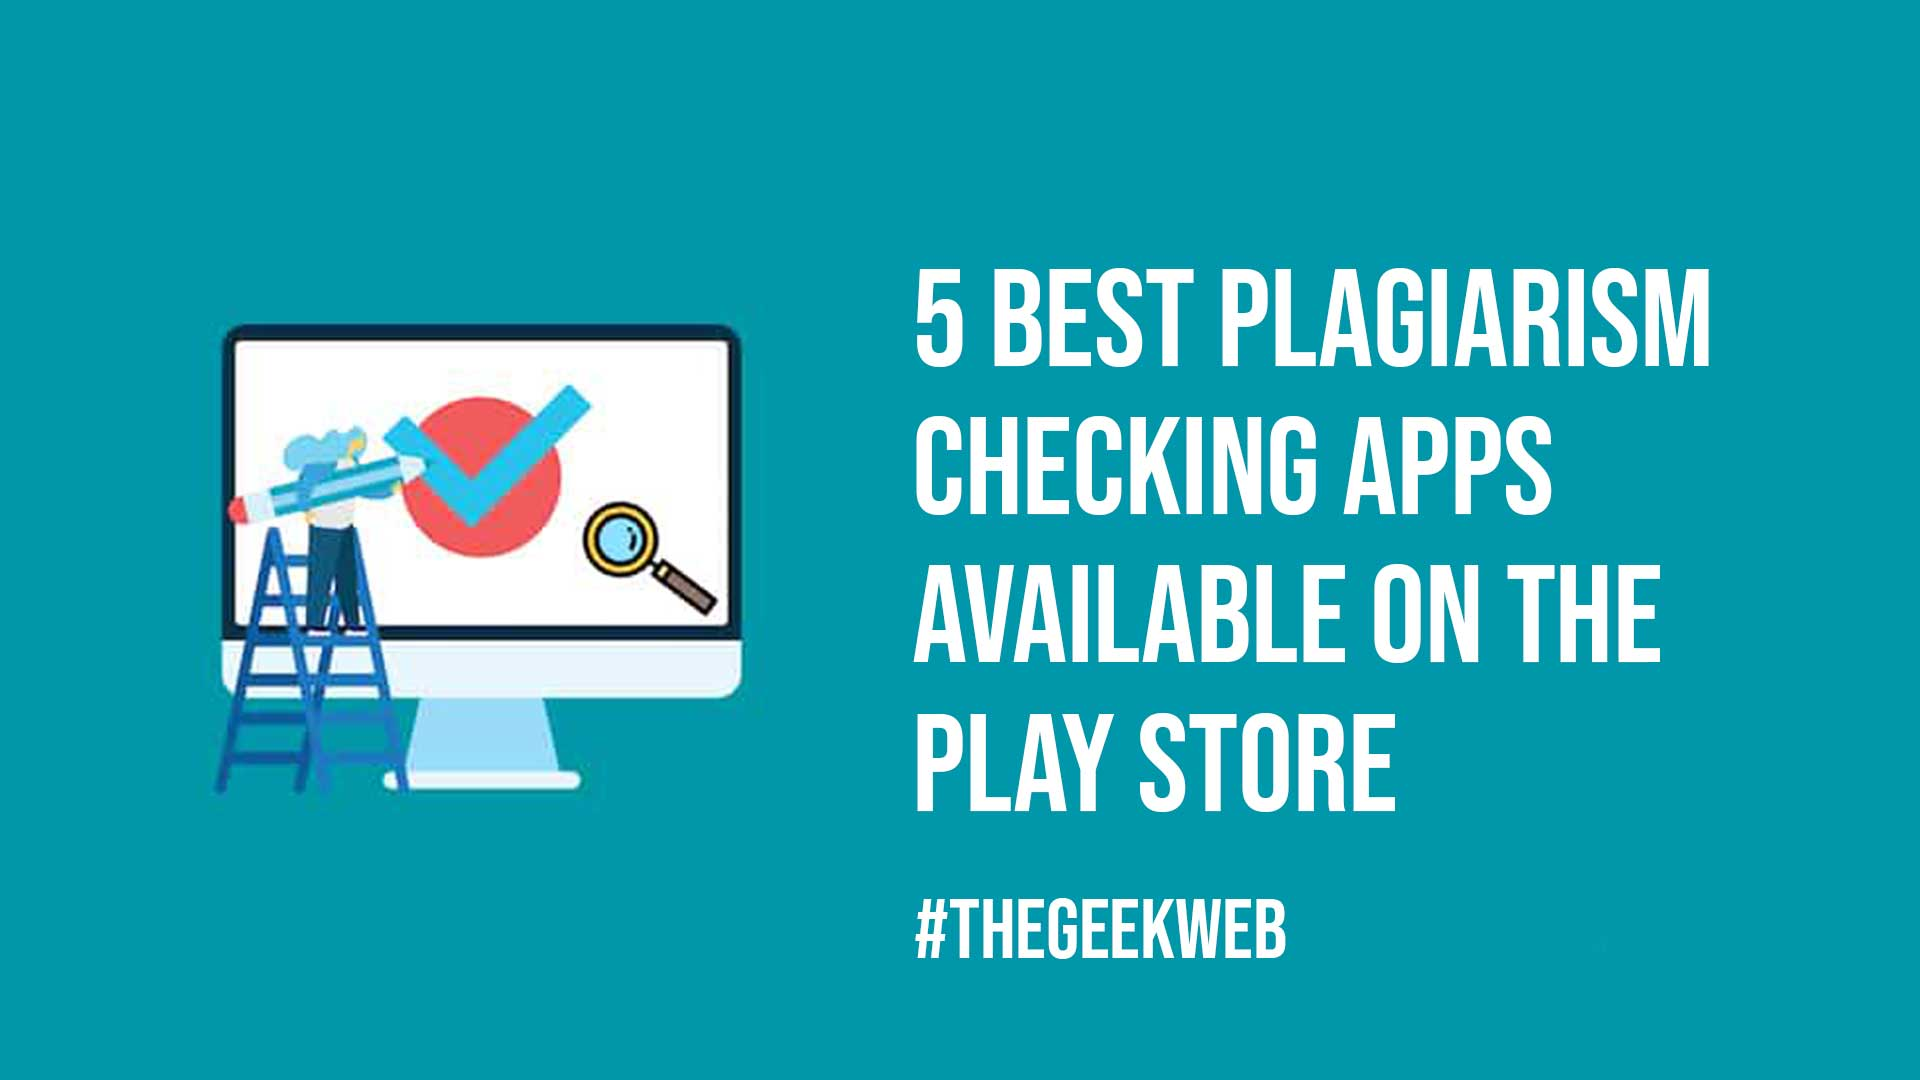 5 Best Plagiarism Checking Apps Available On the Play Store